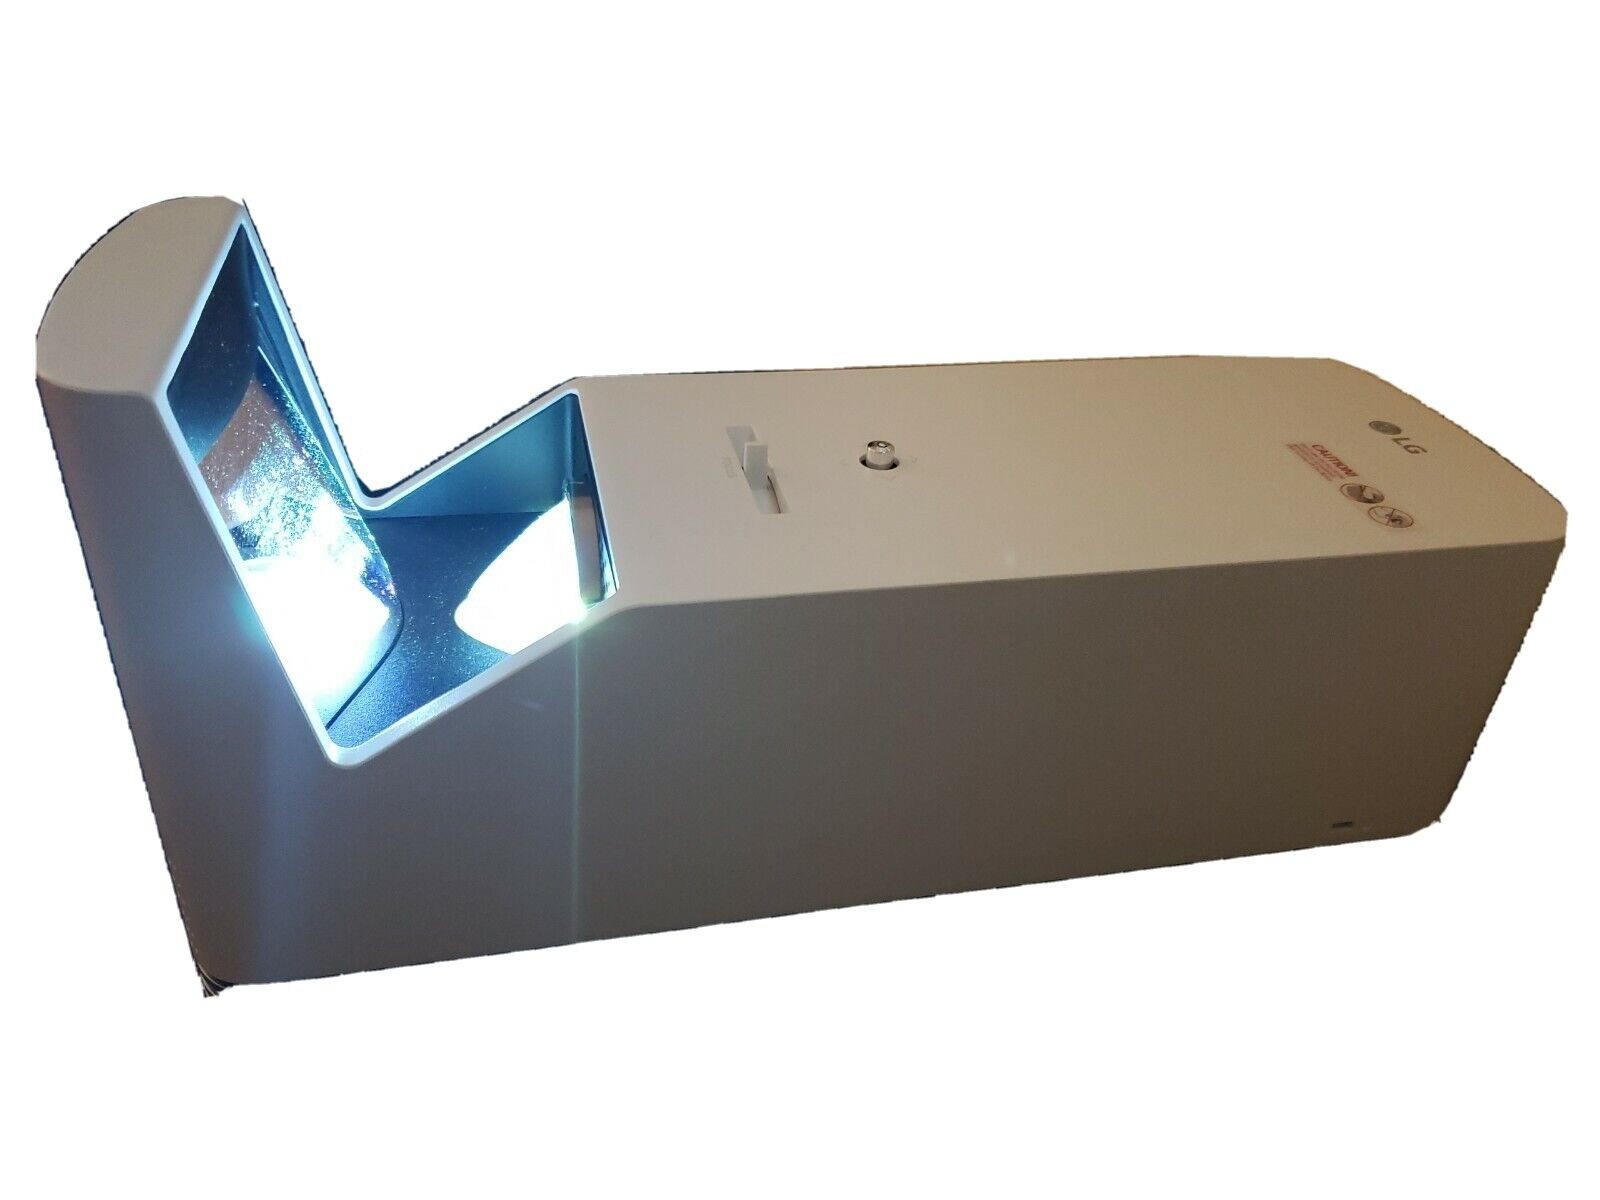 LG CineBeam HF85LA Ultra Short Throw Laser Smart TV Home Theater . Available Now for 800.00